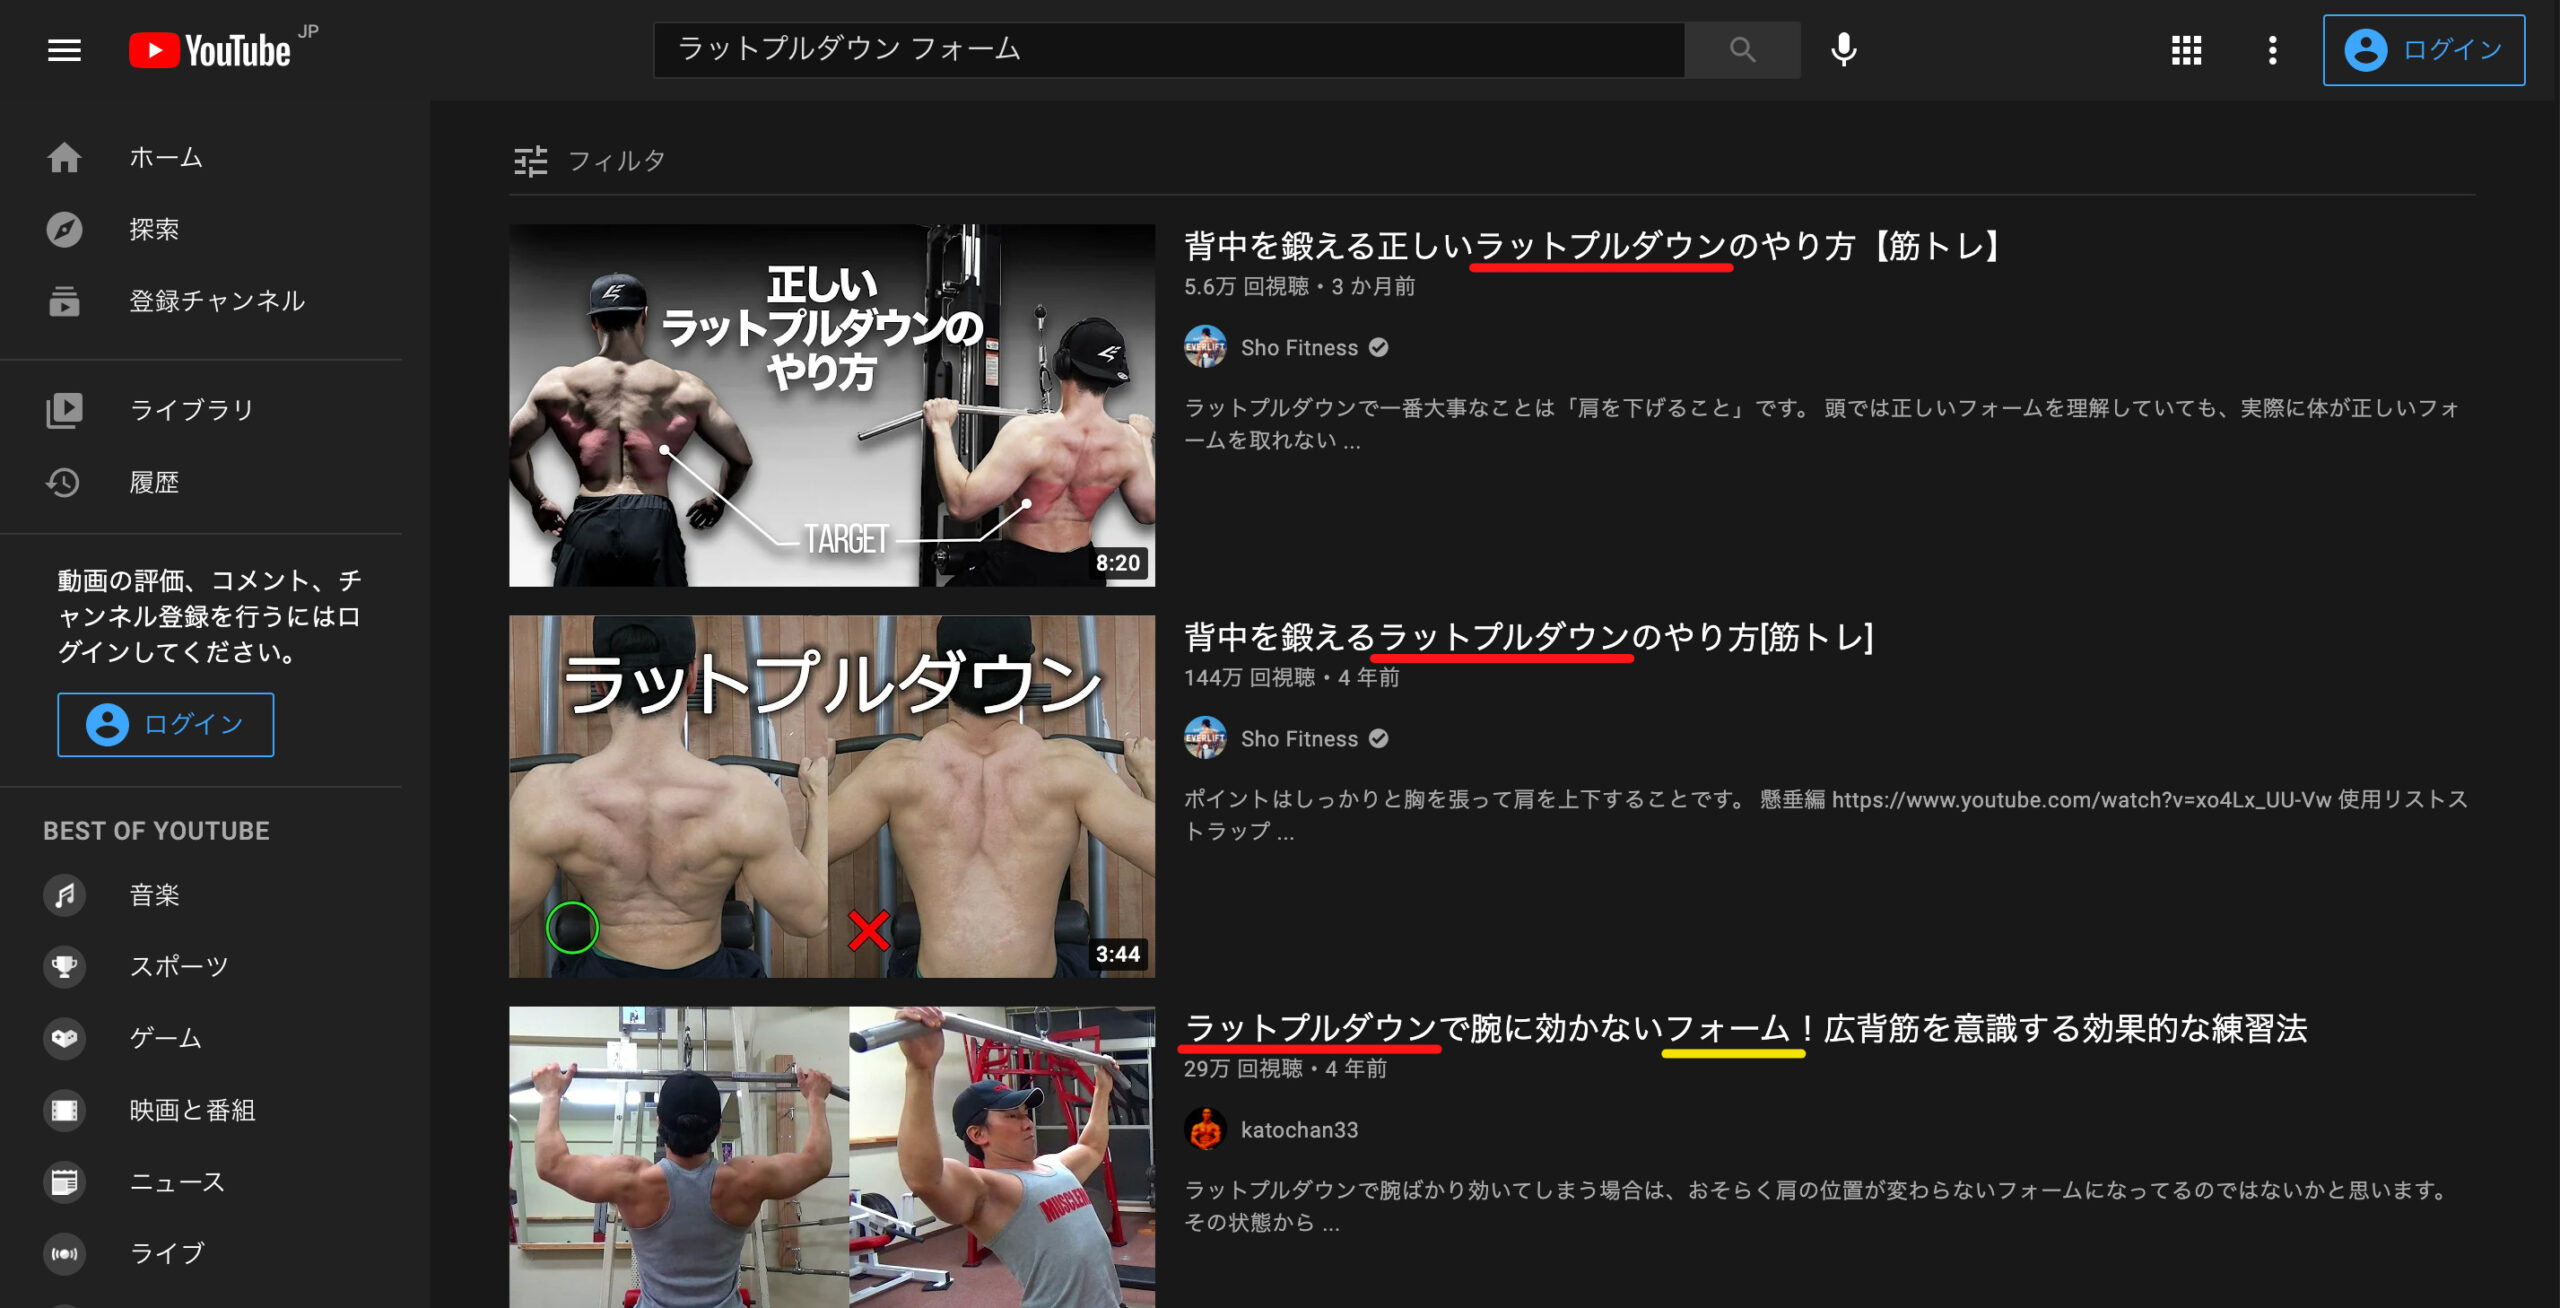 youtube-lat pull form-top display